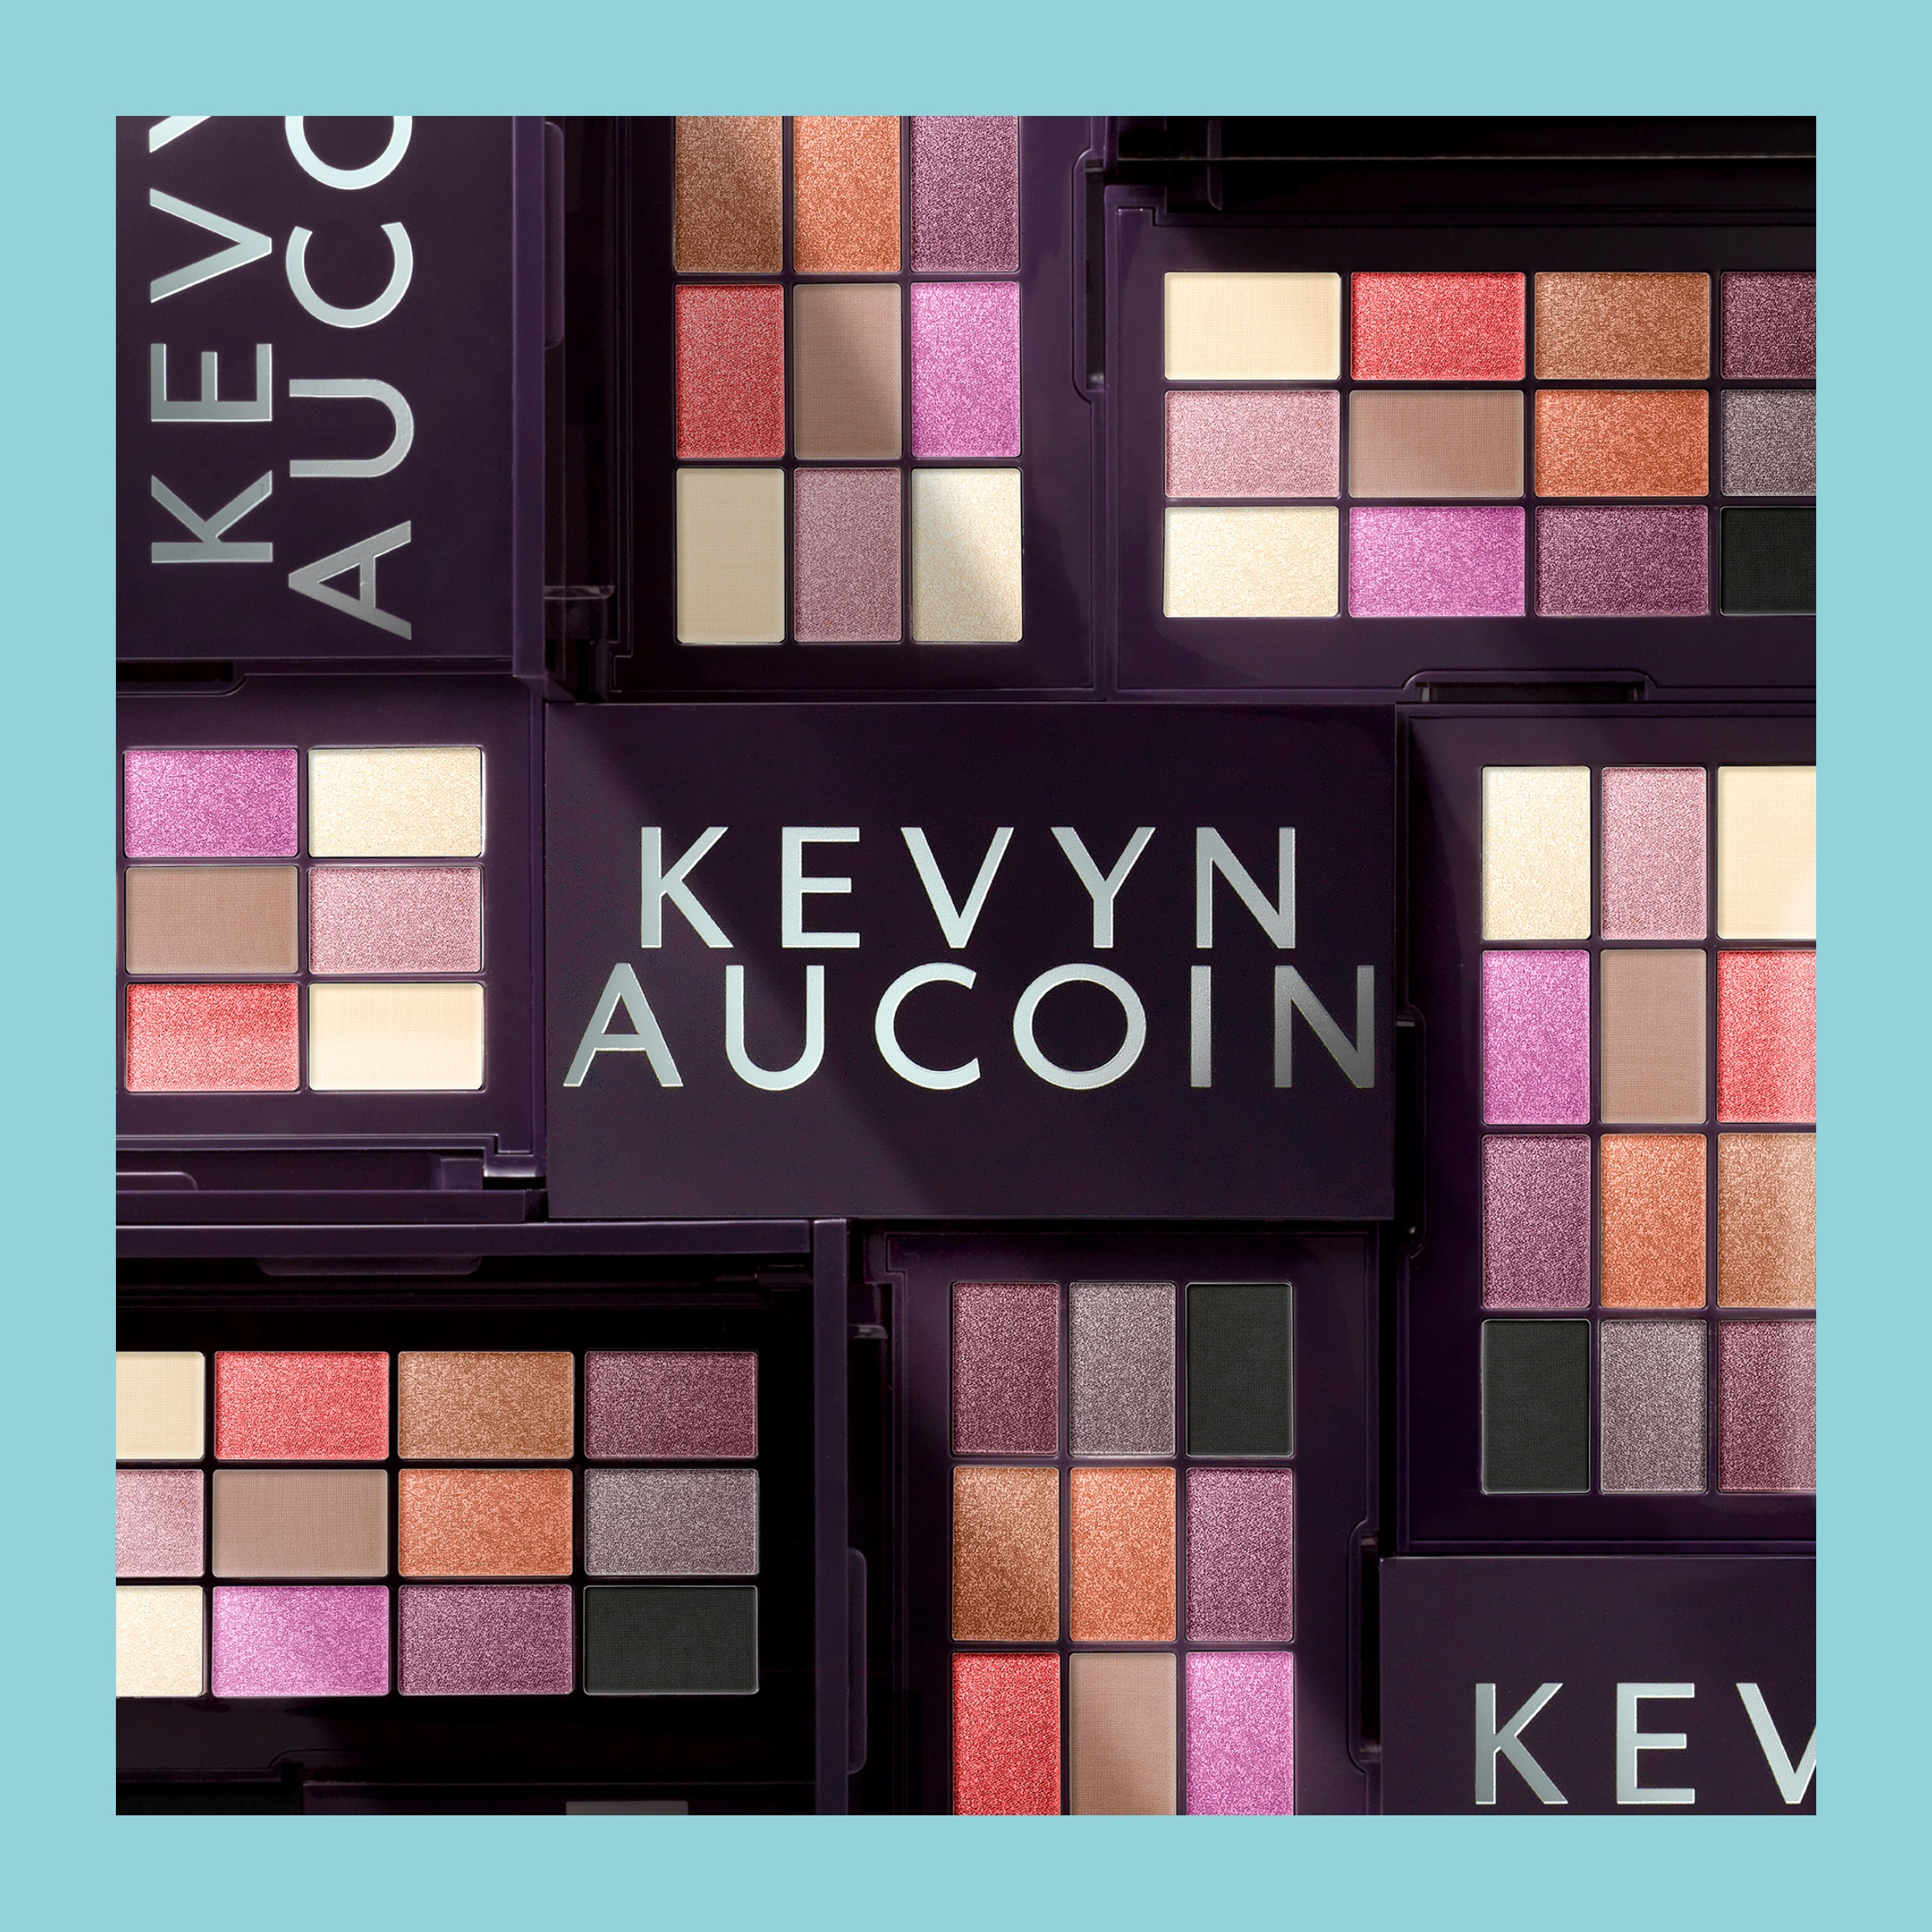 Just landed: Kevyn Aucoin